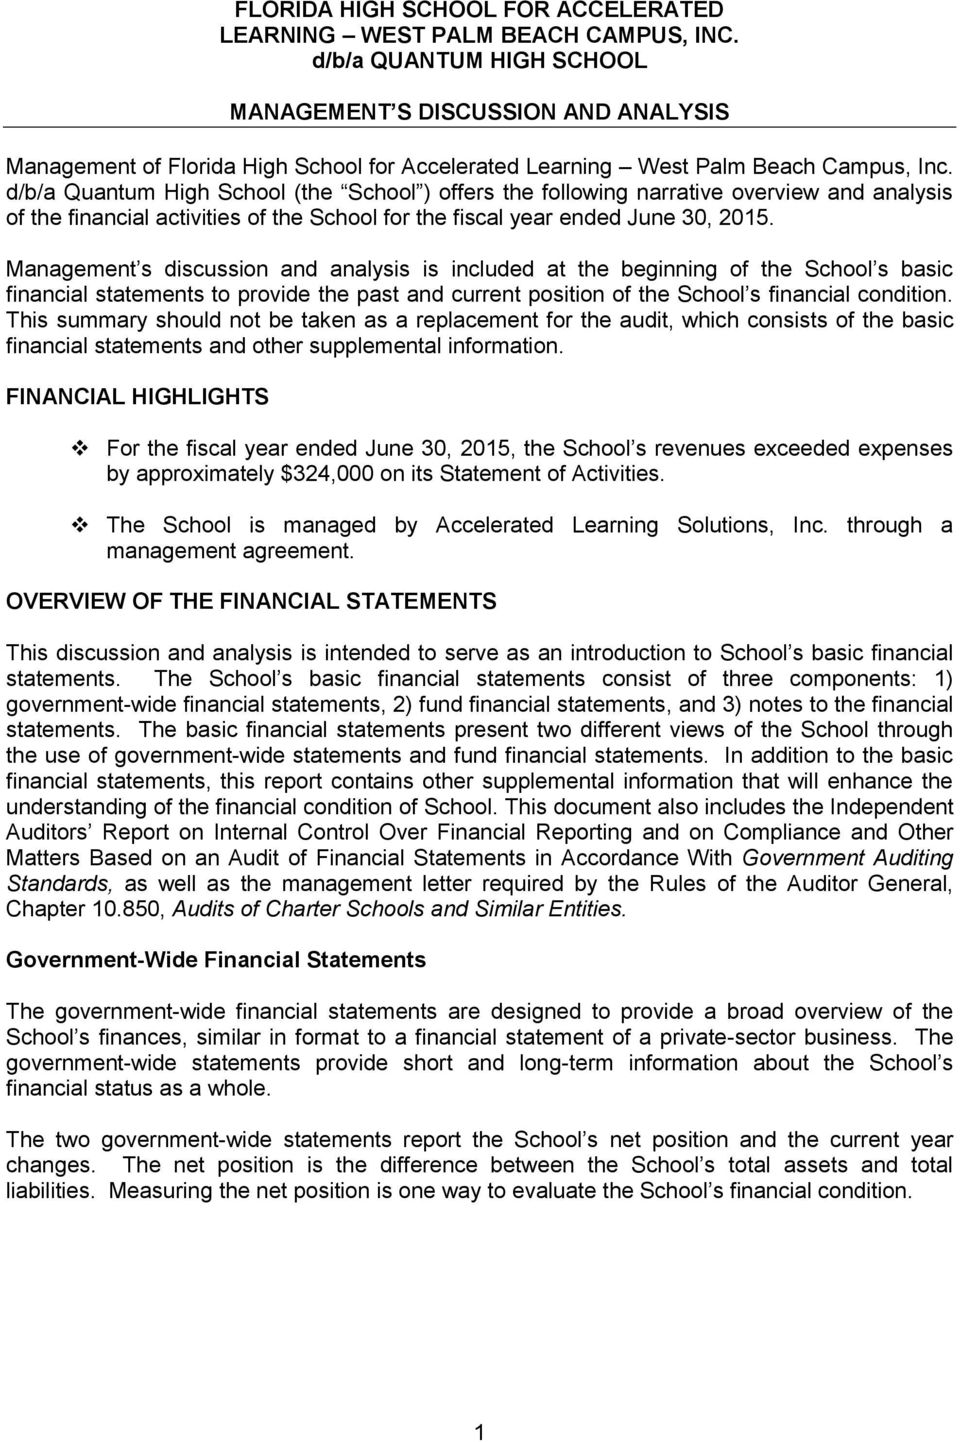 Management s discussion and analysis is included at the beginning of the School s basic financial statements to provide the past and current position of the School s financial condition.